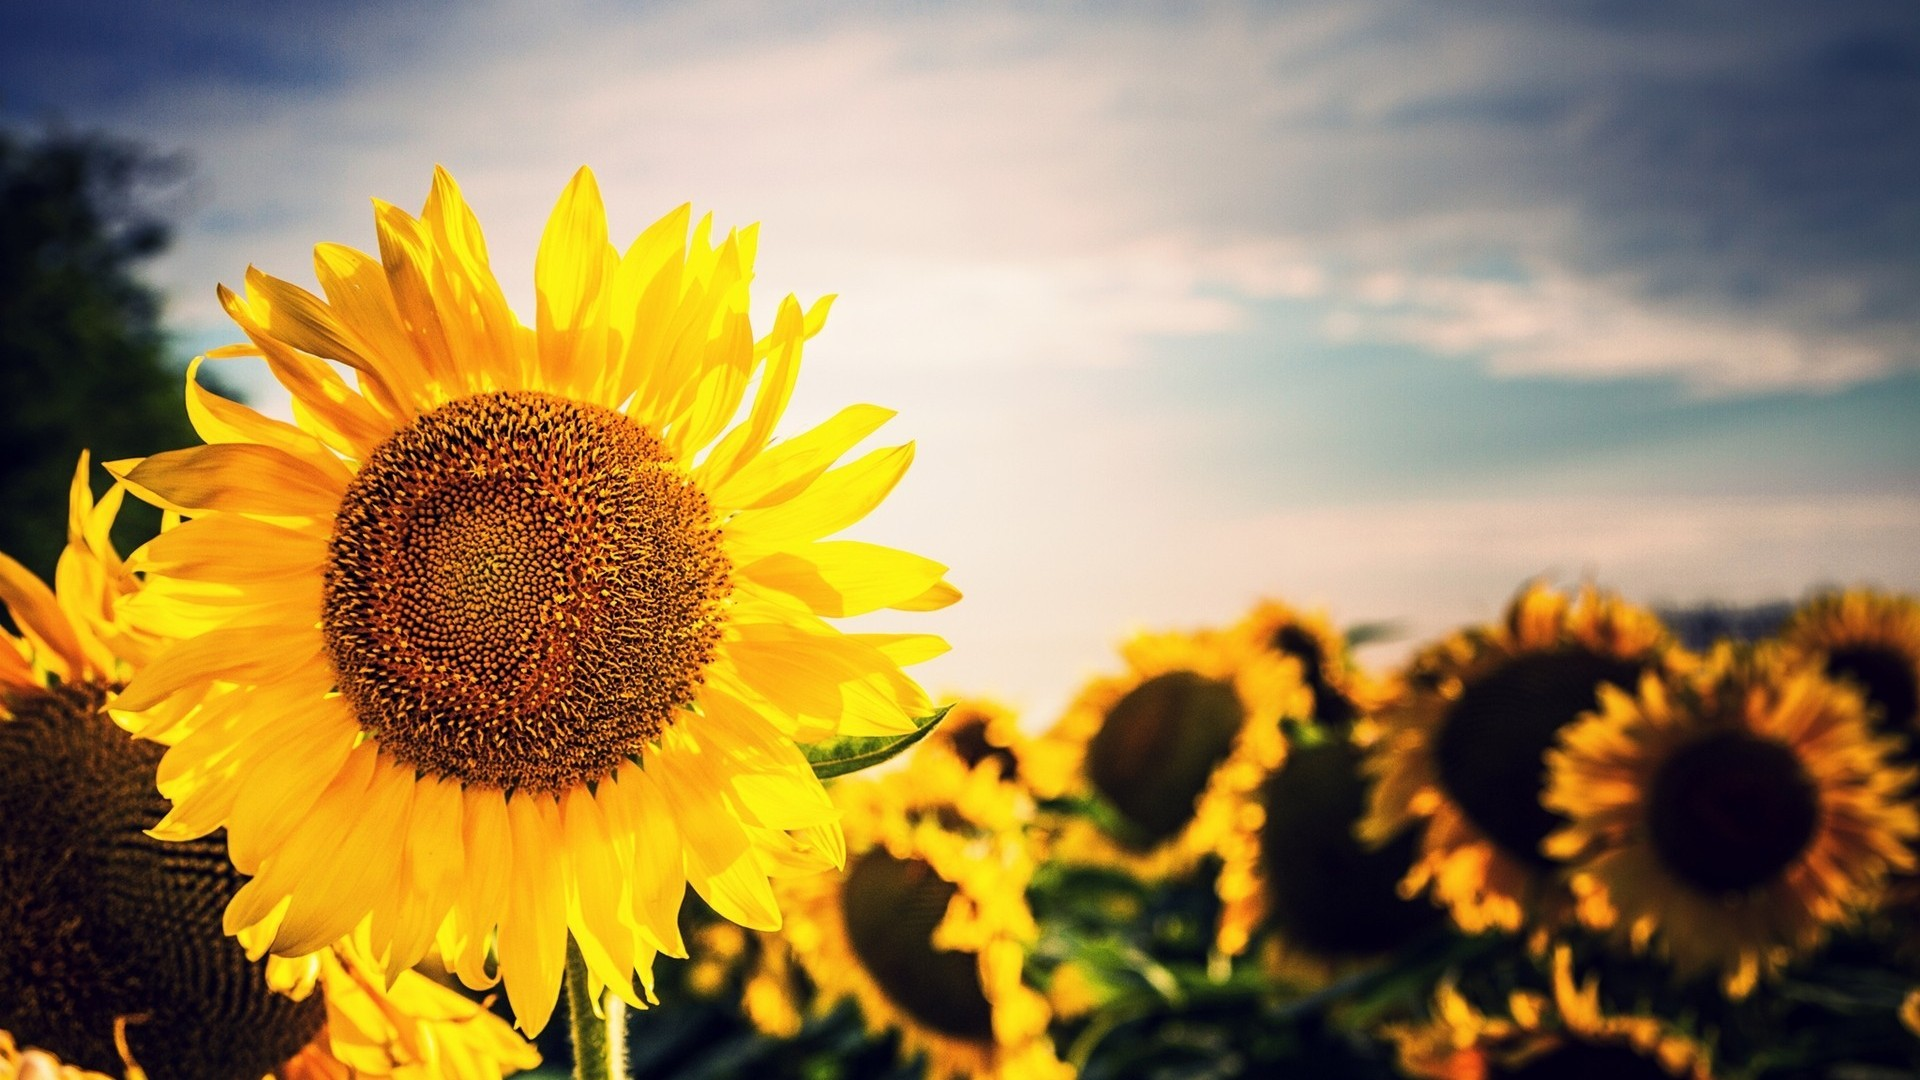 sunflower images wallpapers 41 wallpapers � hd wallpapers